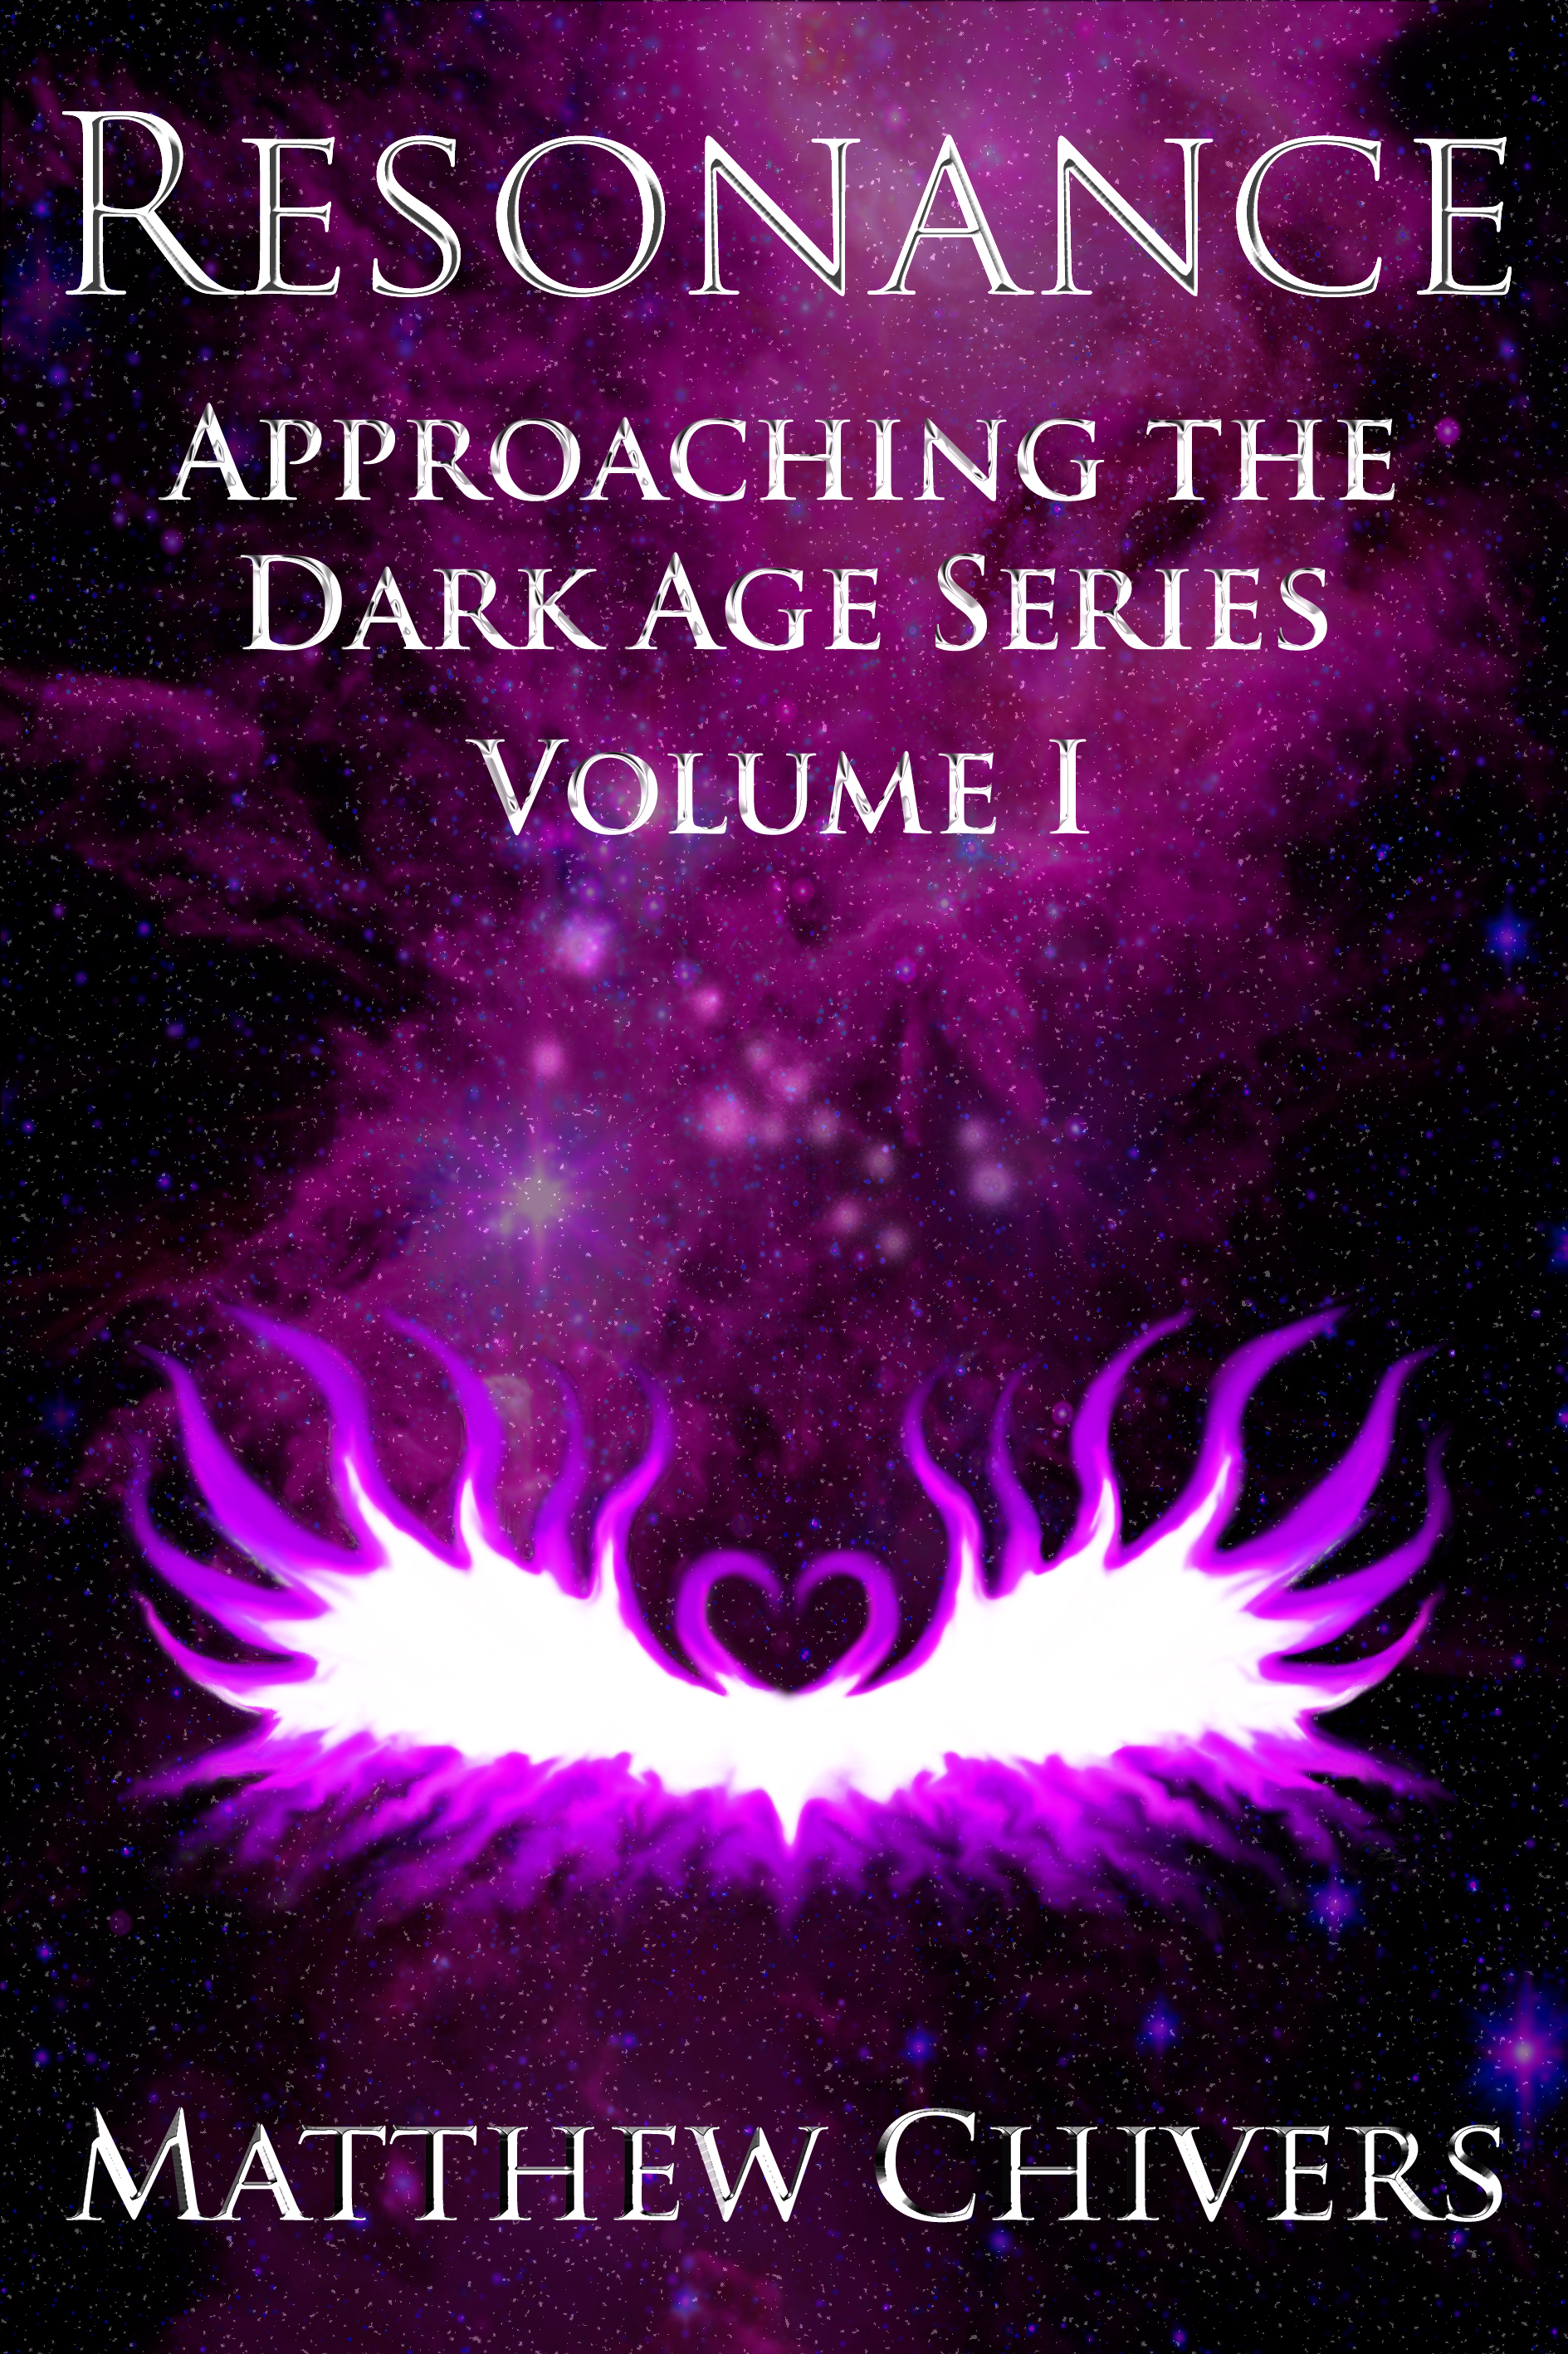 Resonance, Vol. I (Approaching the Dark Age Series)